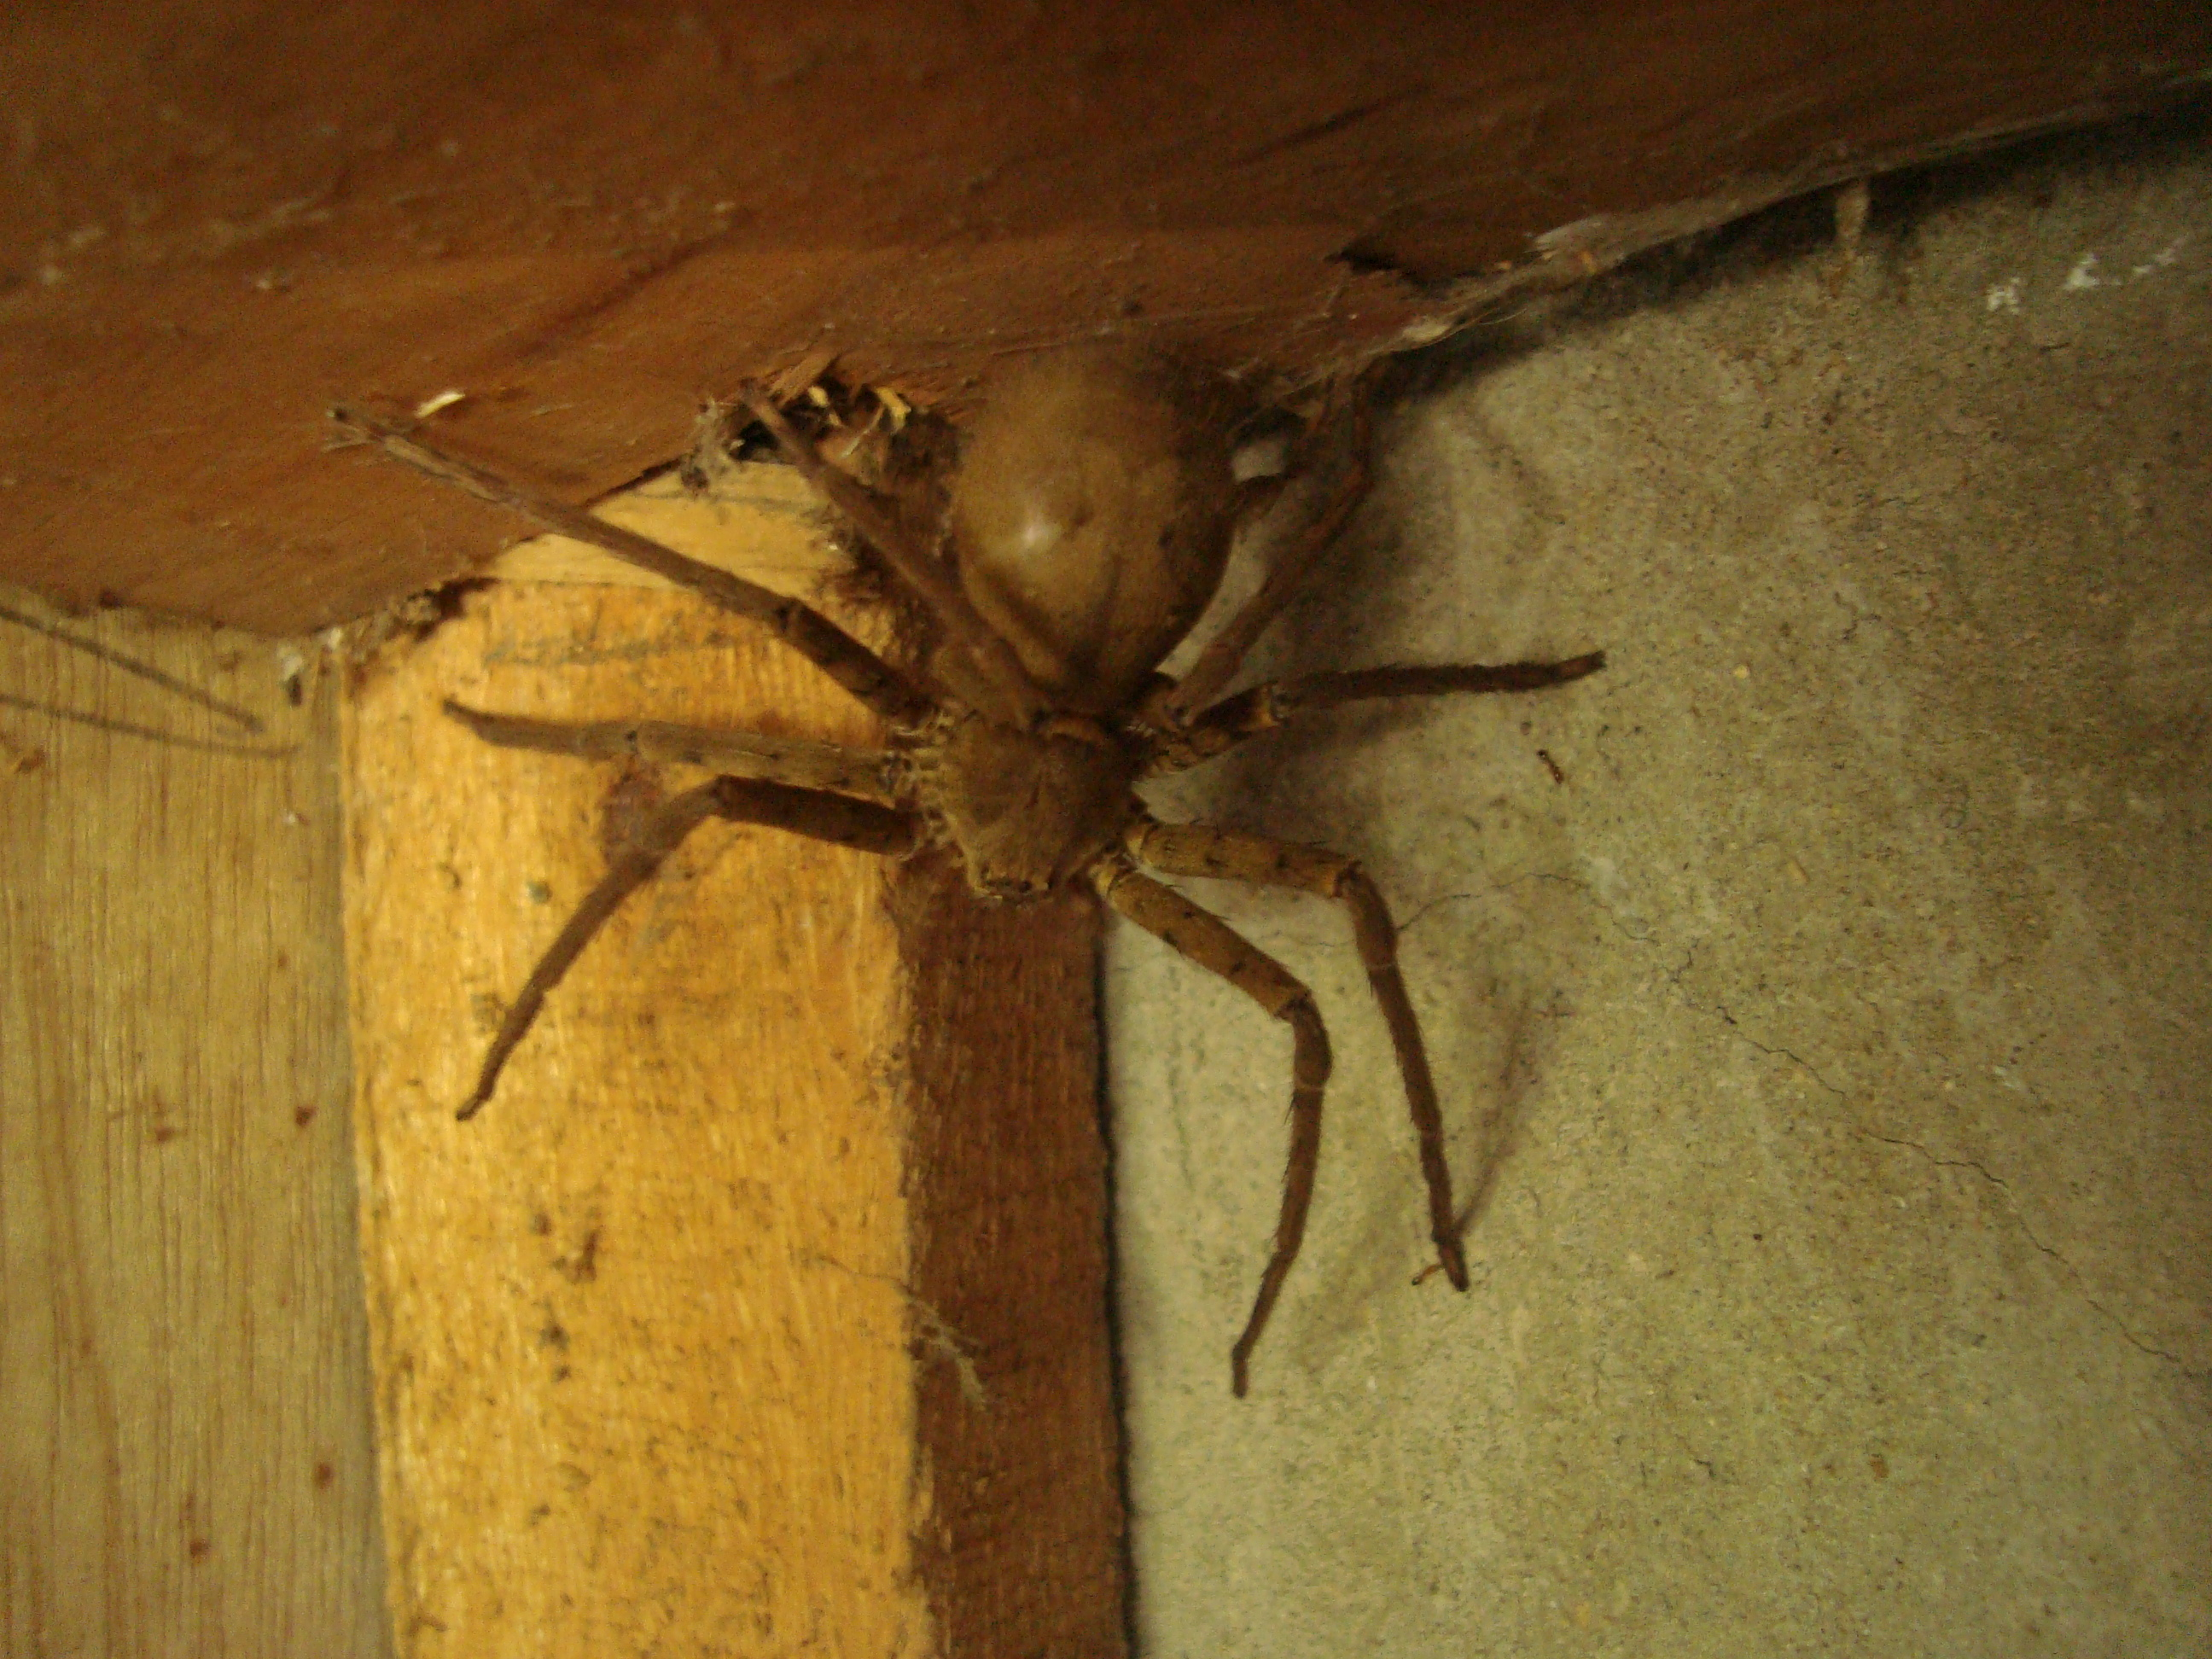 Spider infestation in house for How to stop spiders coming in your home